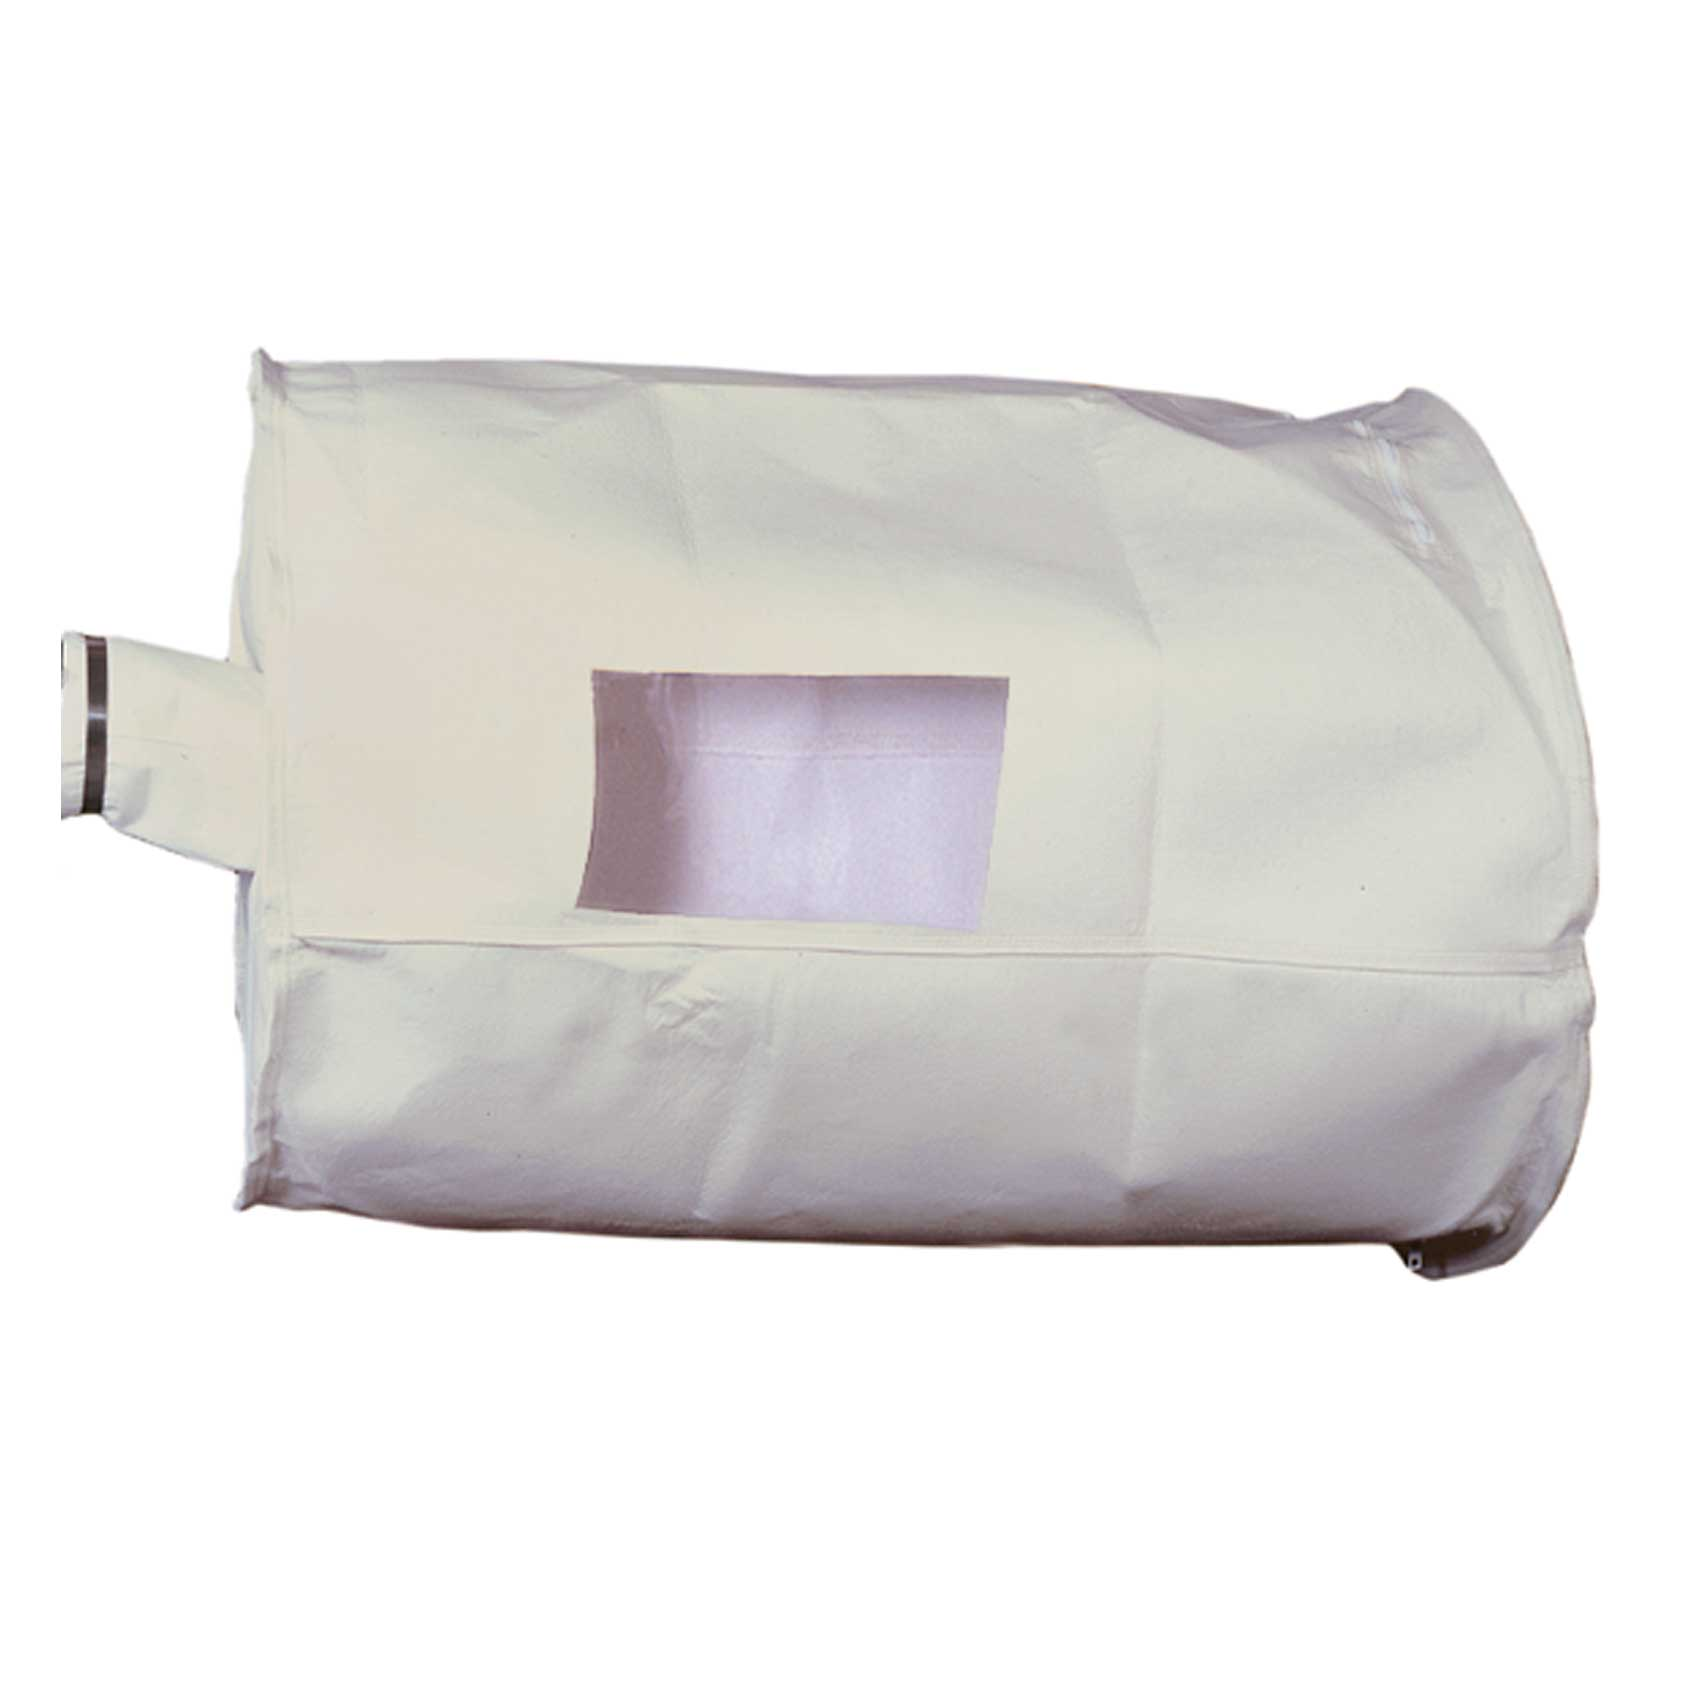 1 micron Dust Collector Bag, PSI #DC3